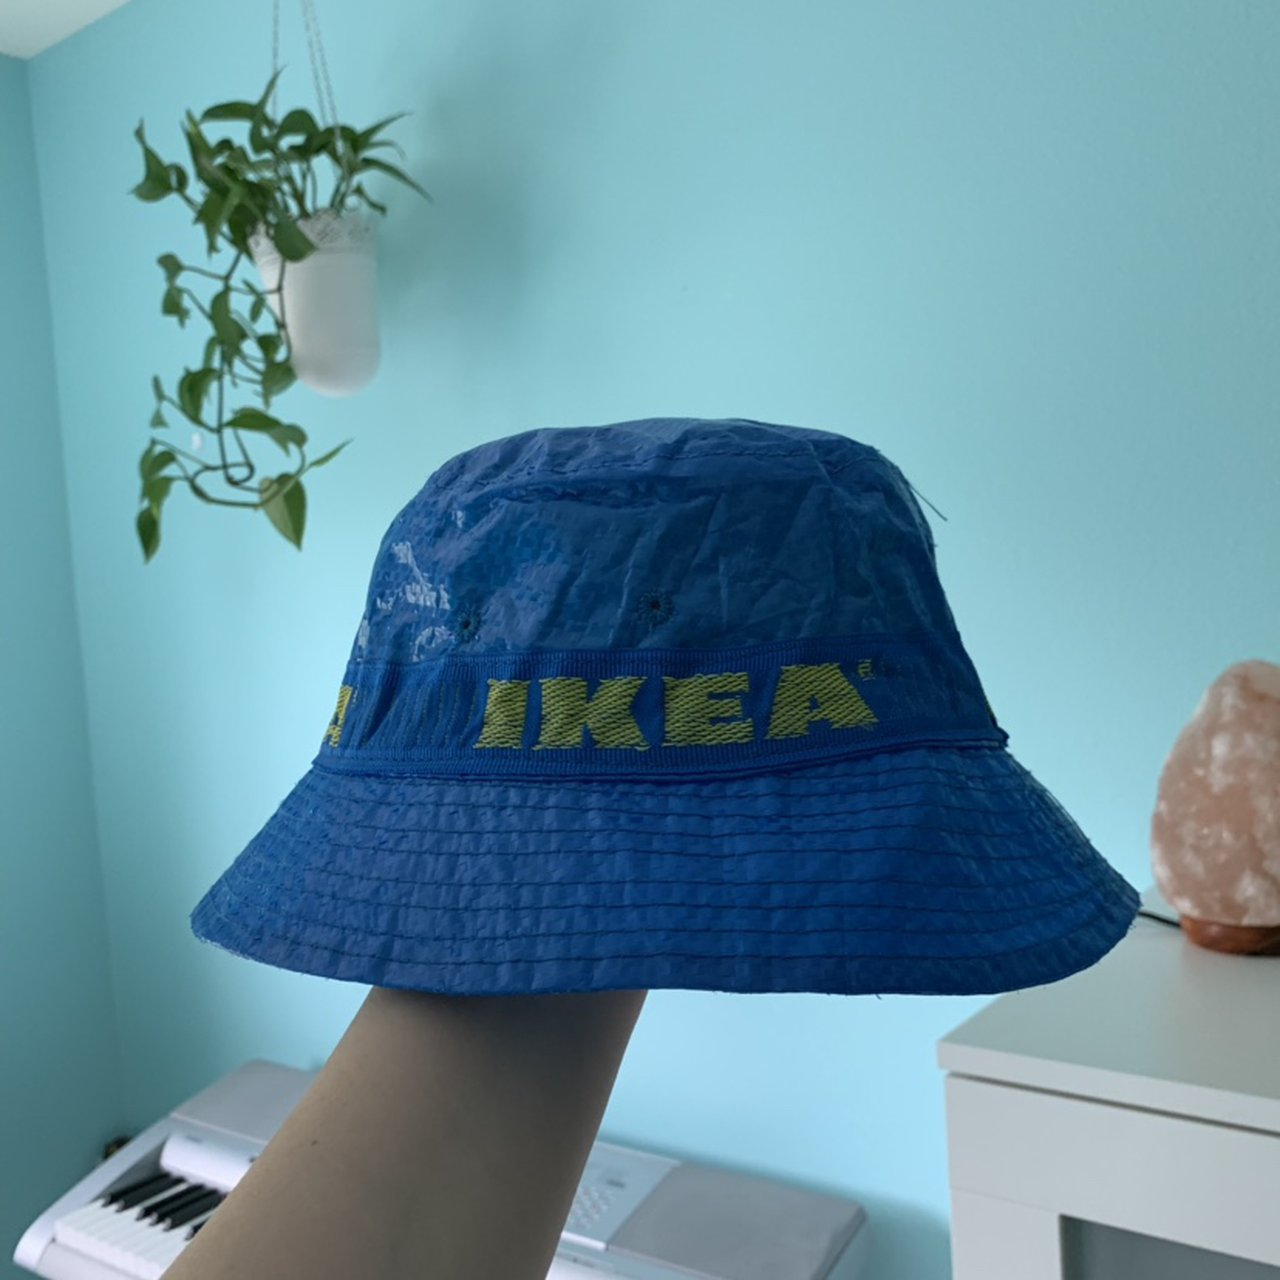 Ikea Bucket Hat Made By Ikea Blue Hat With Yellow Depop